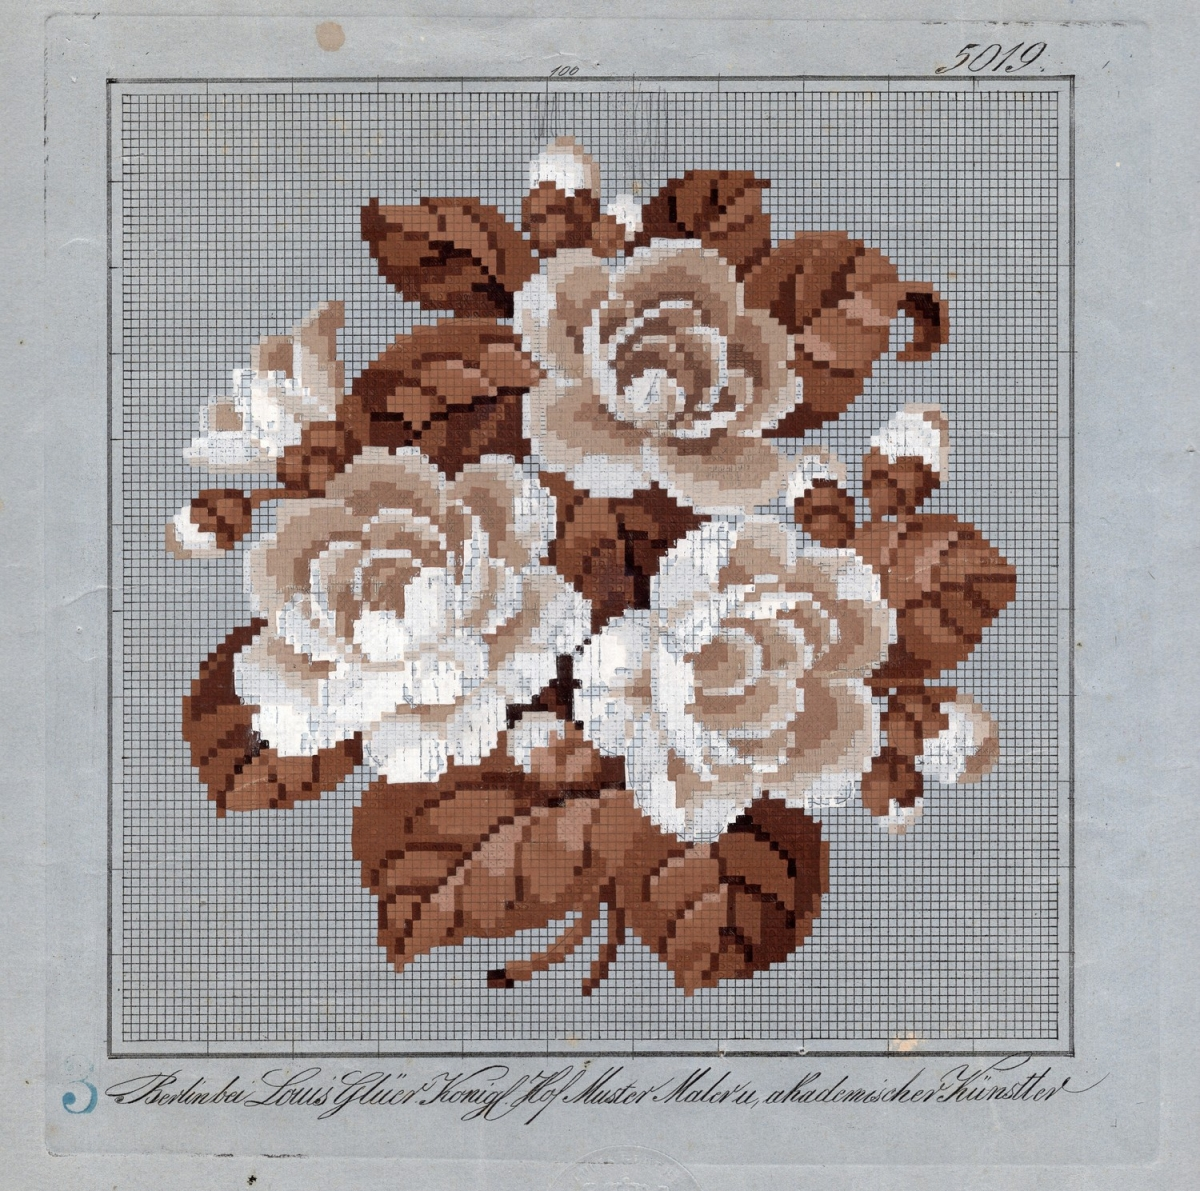 Berlin work chart for an embroidered picture, including a bunch of flowers (probably roses) in cream and brown with brown leaves. Germany, 1840s - 1850s.